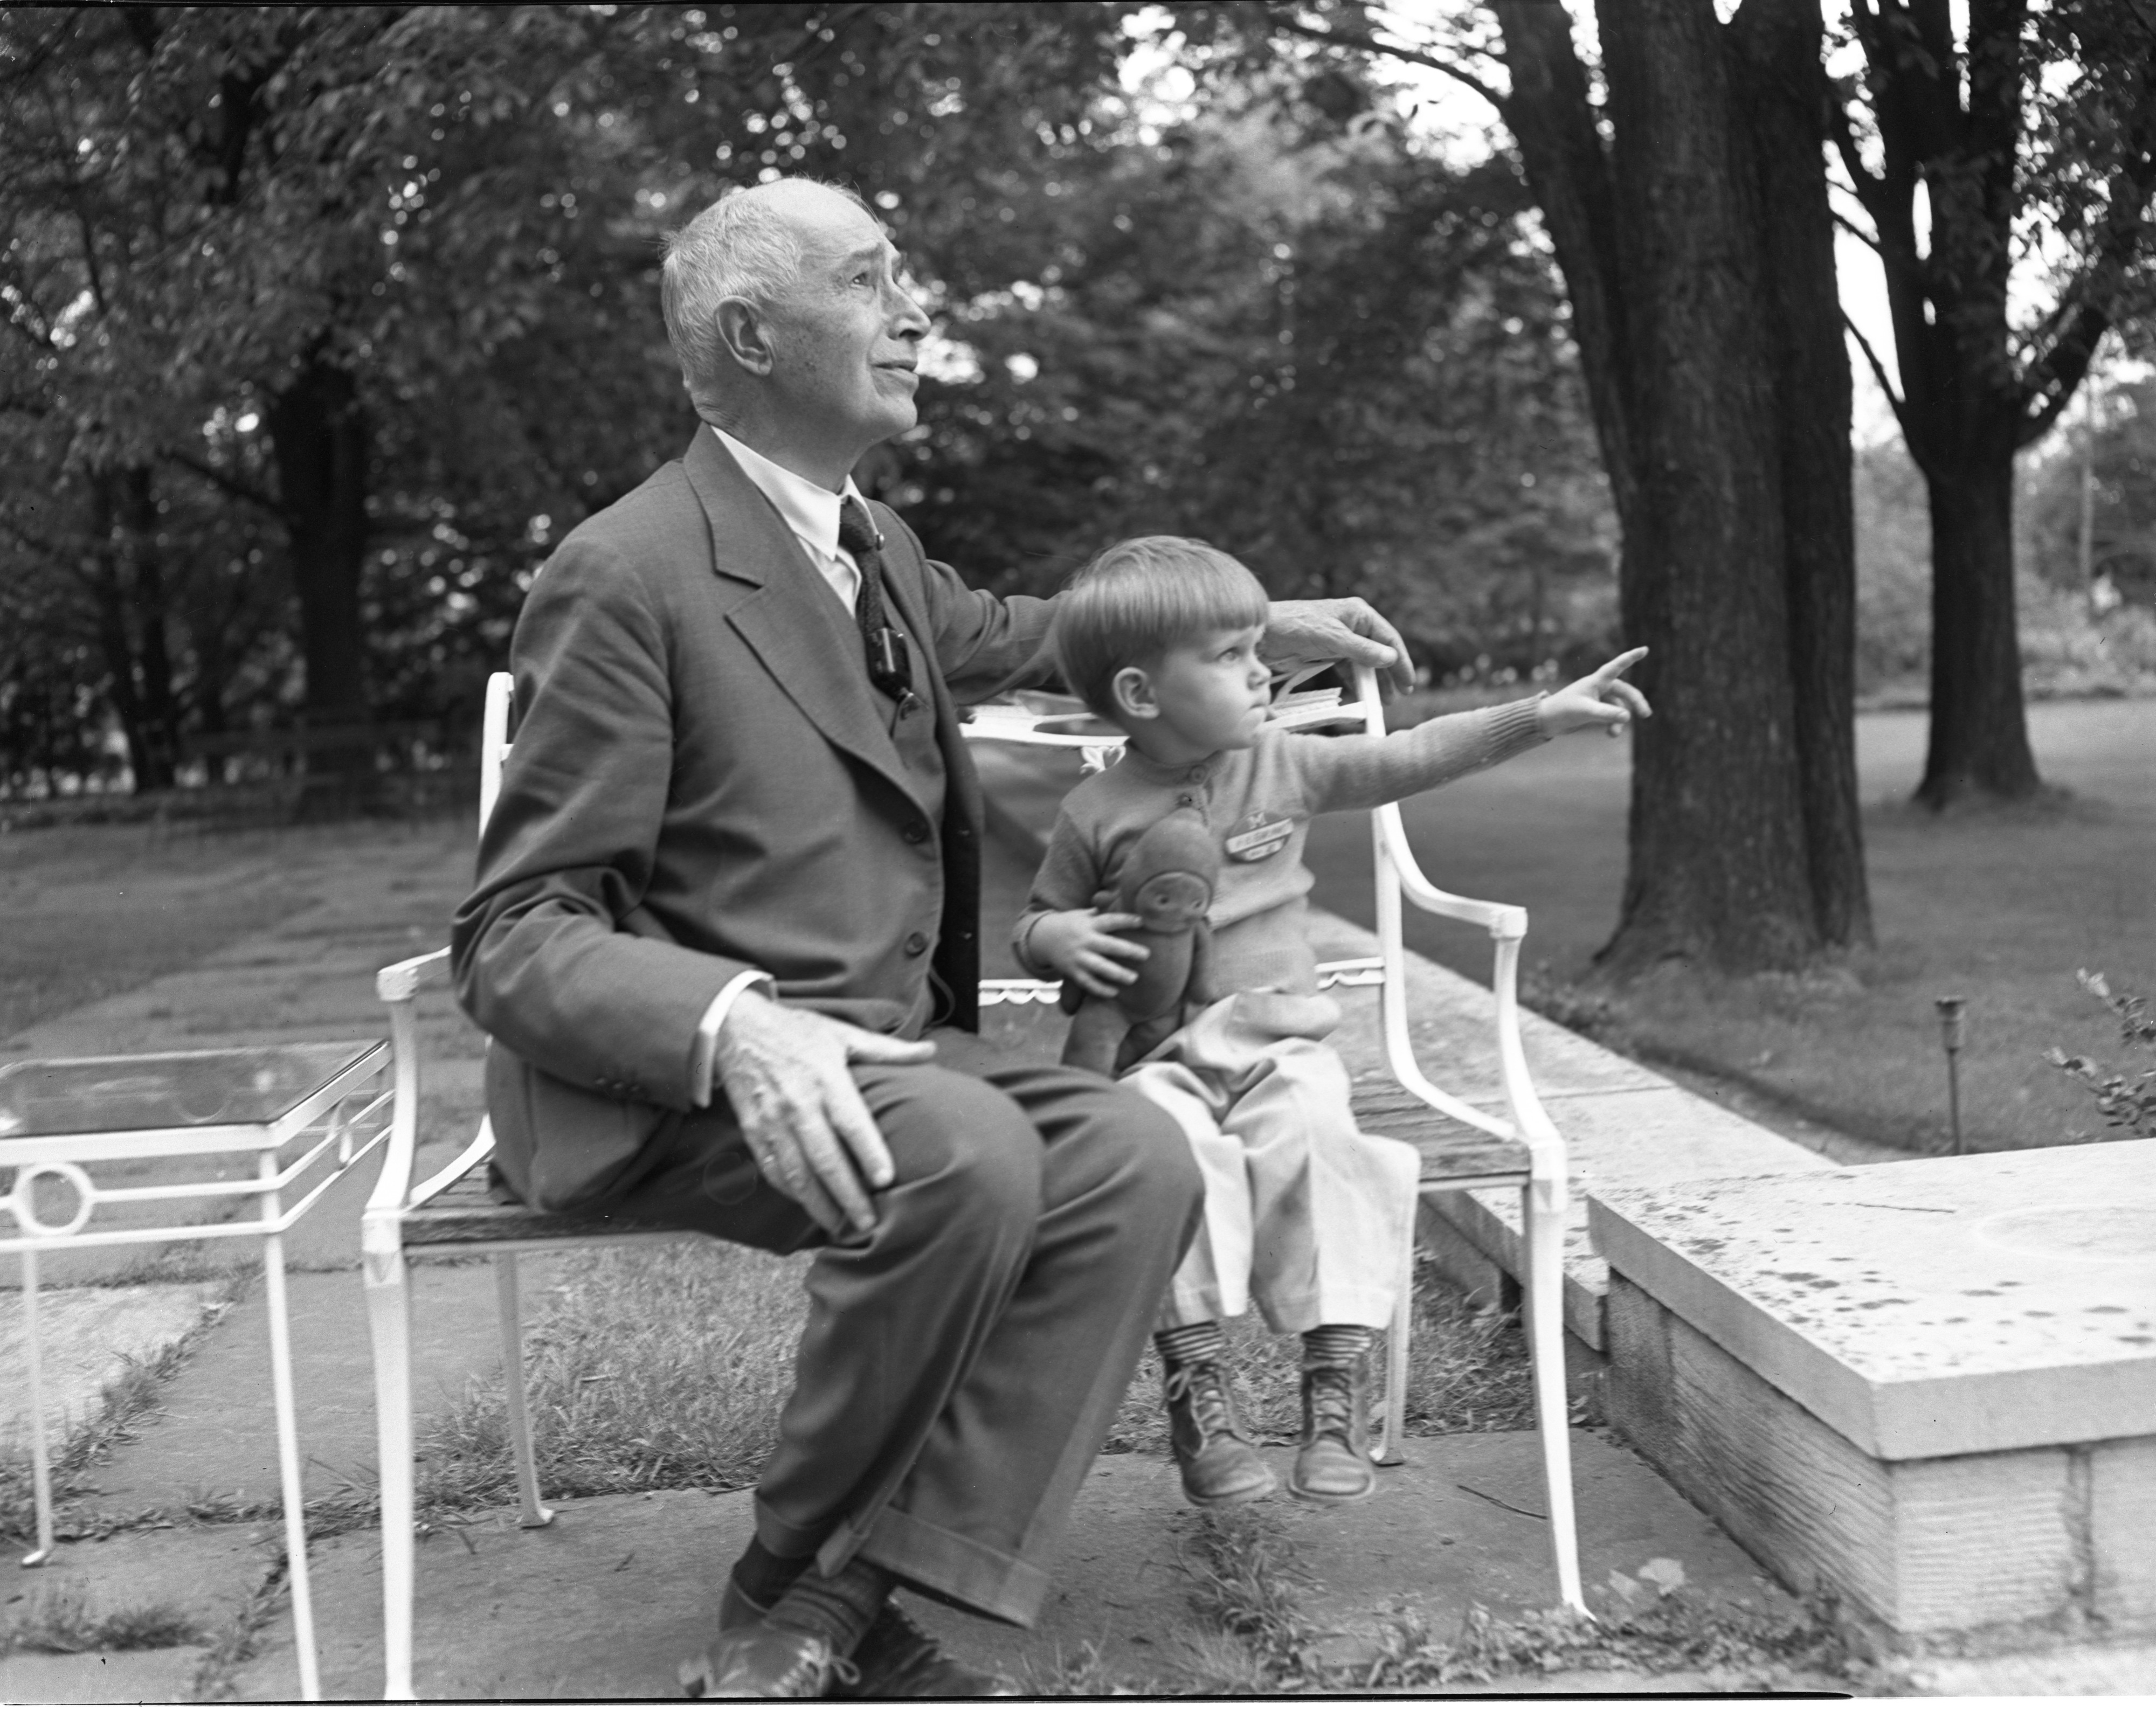 H. B. Earhart & Grandson Jimmy Kennedy, June 1948 image